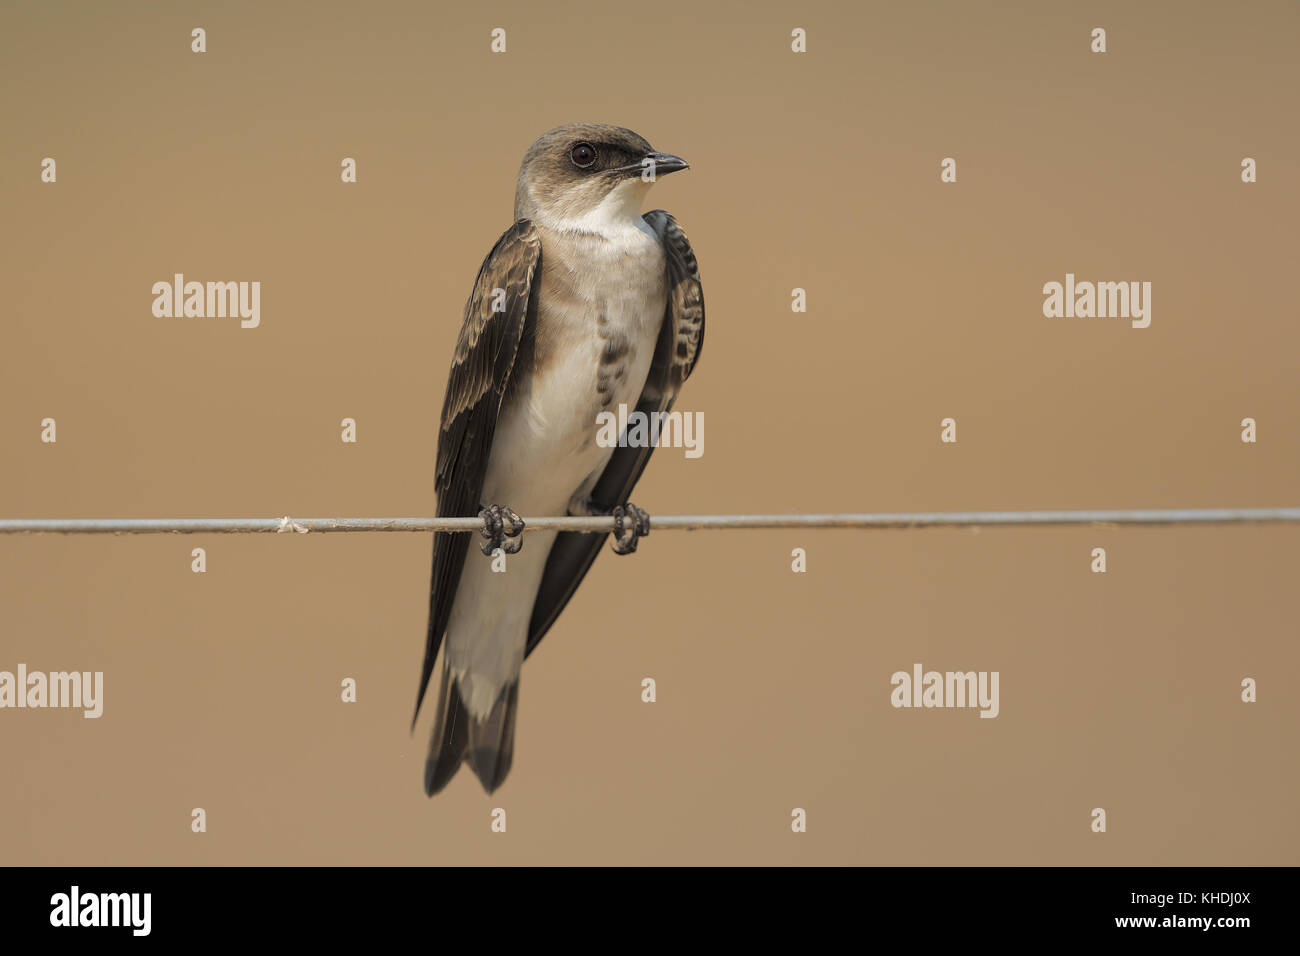 Brown-chested Martin - Stock Image